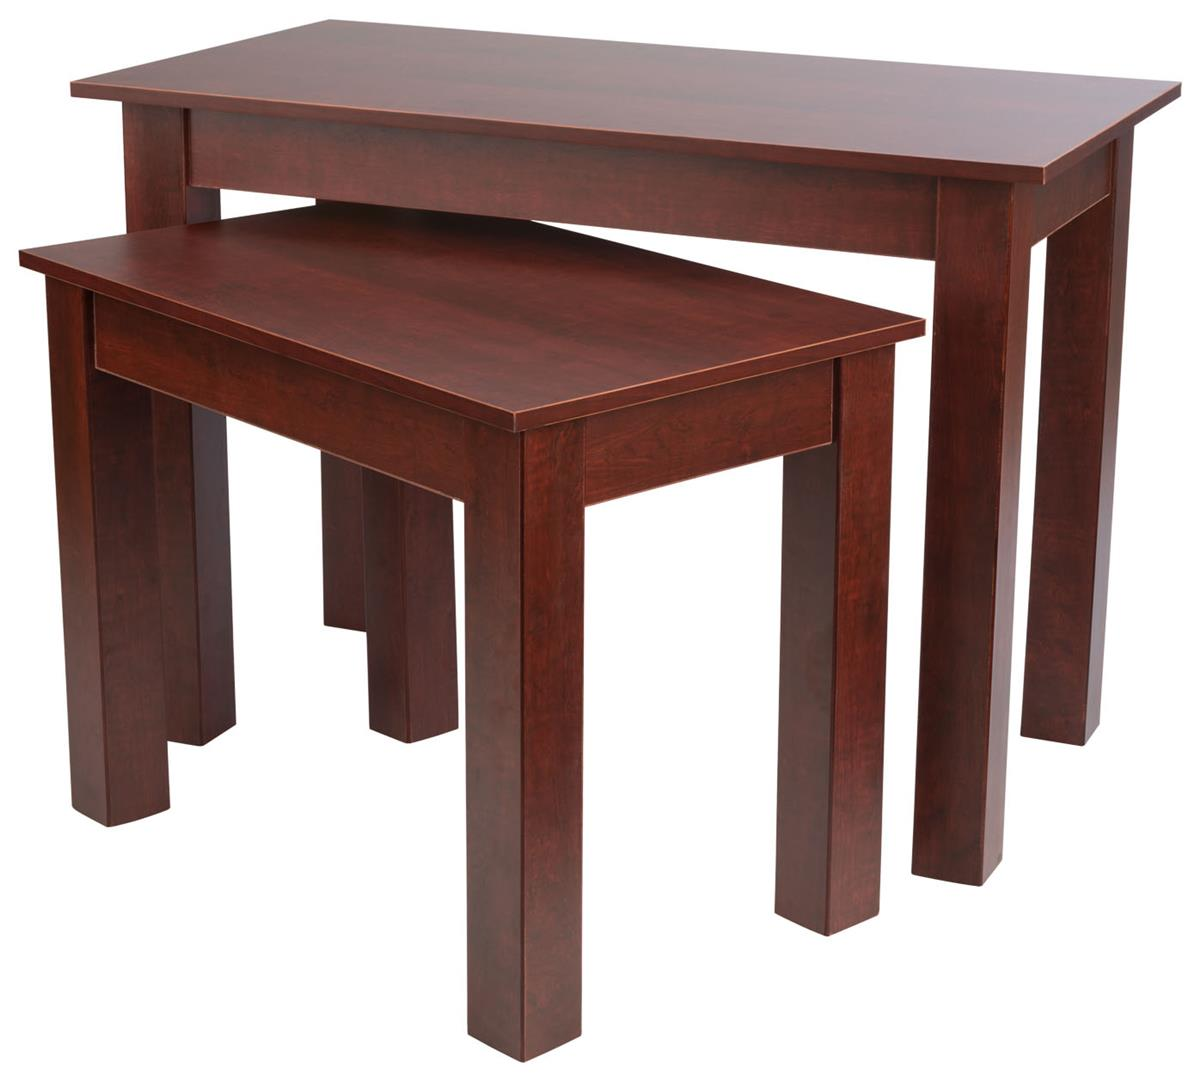 Wood Retail Display Tables ~ Cherry nesting table sets wood grain finish